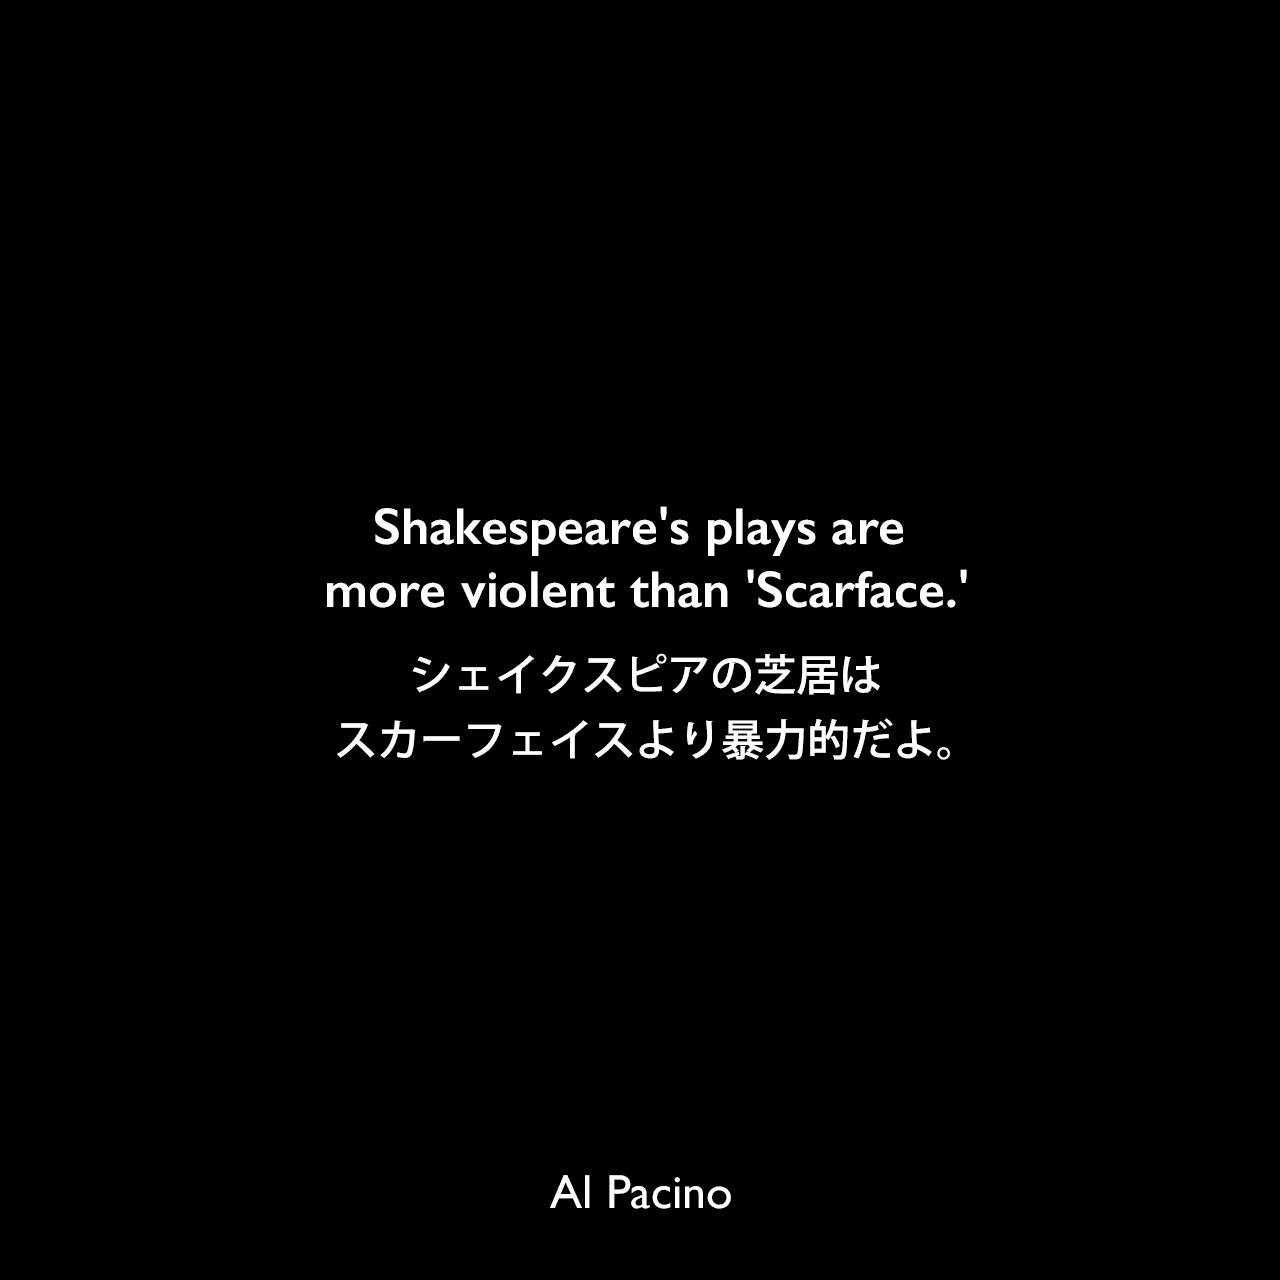 Shakespeare's plays are more violent than 'Scarface.'シェイクスピアの芝居はスカーフェイスより暴力的だよ。Al Pacino